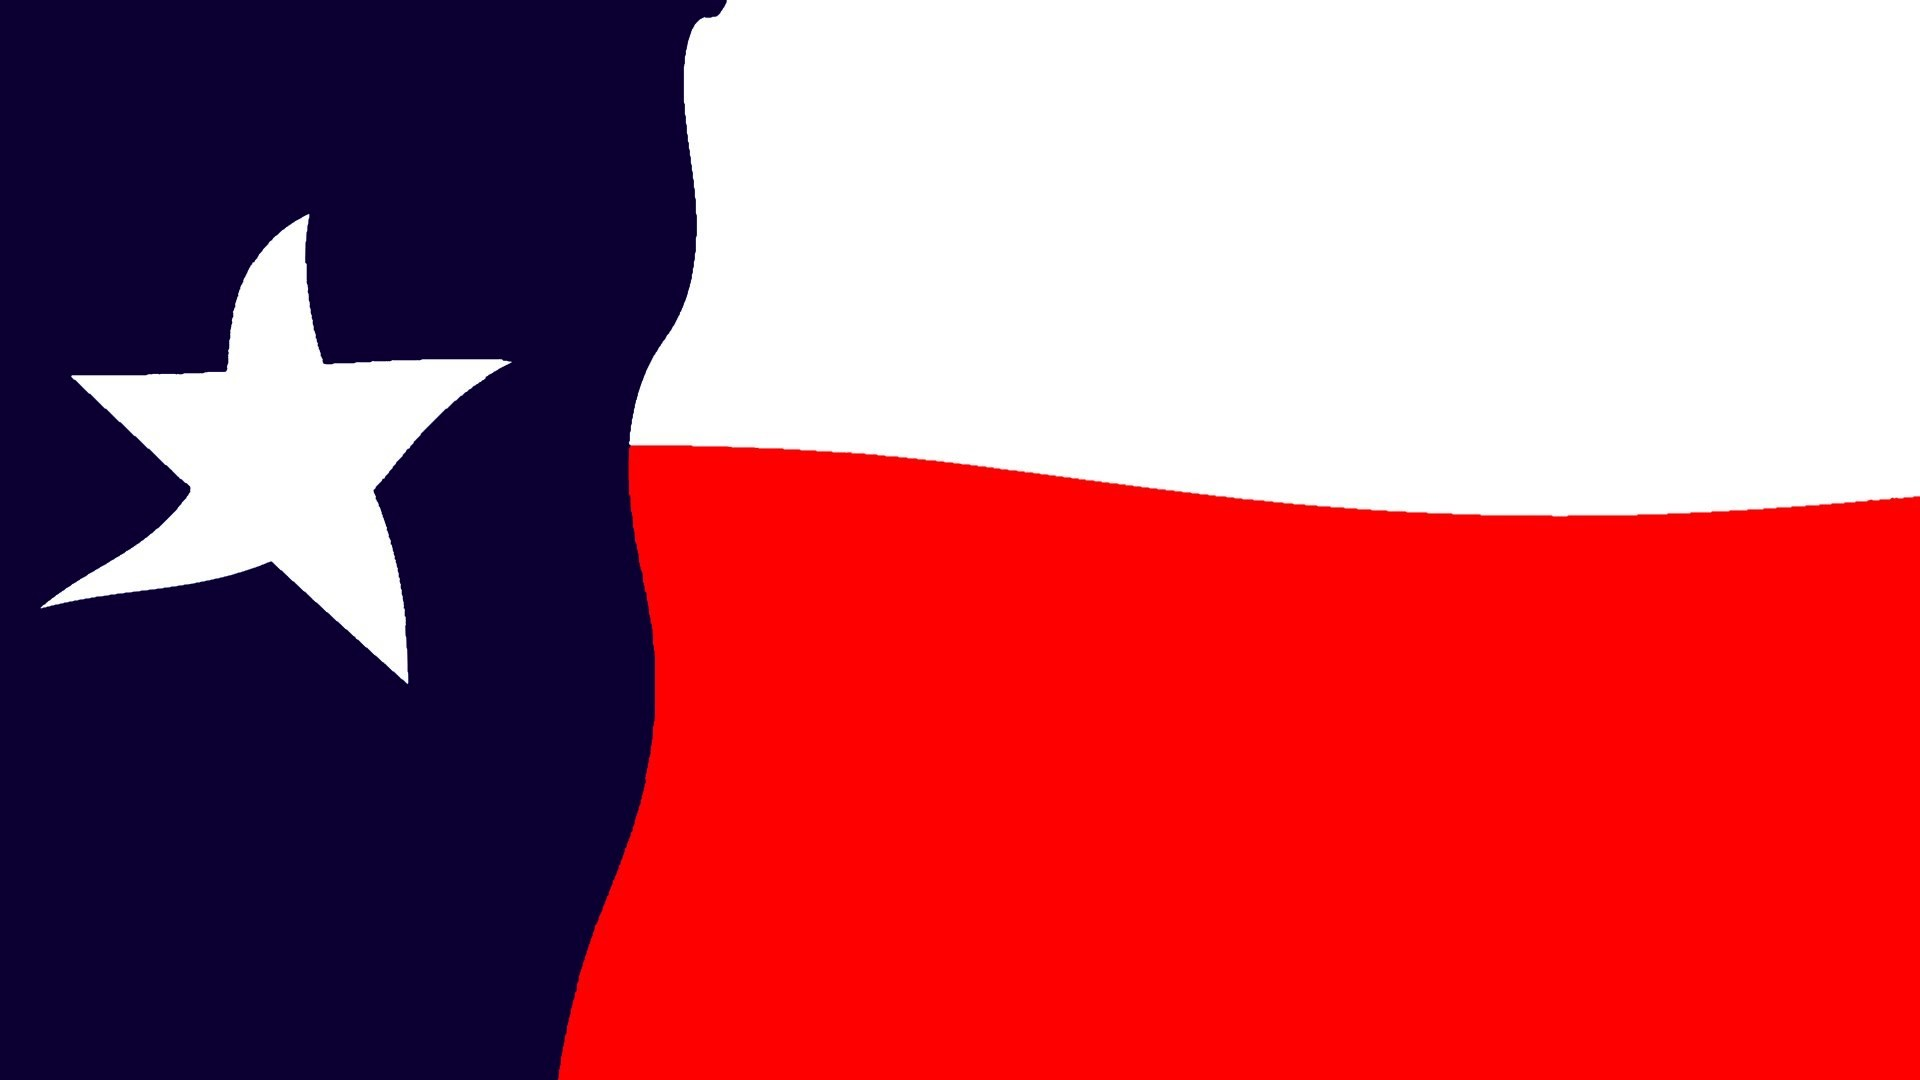 Texan Flag Metal (Flag of Texas) – Download it for free